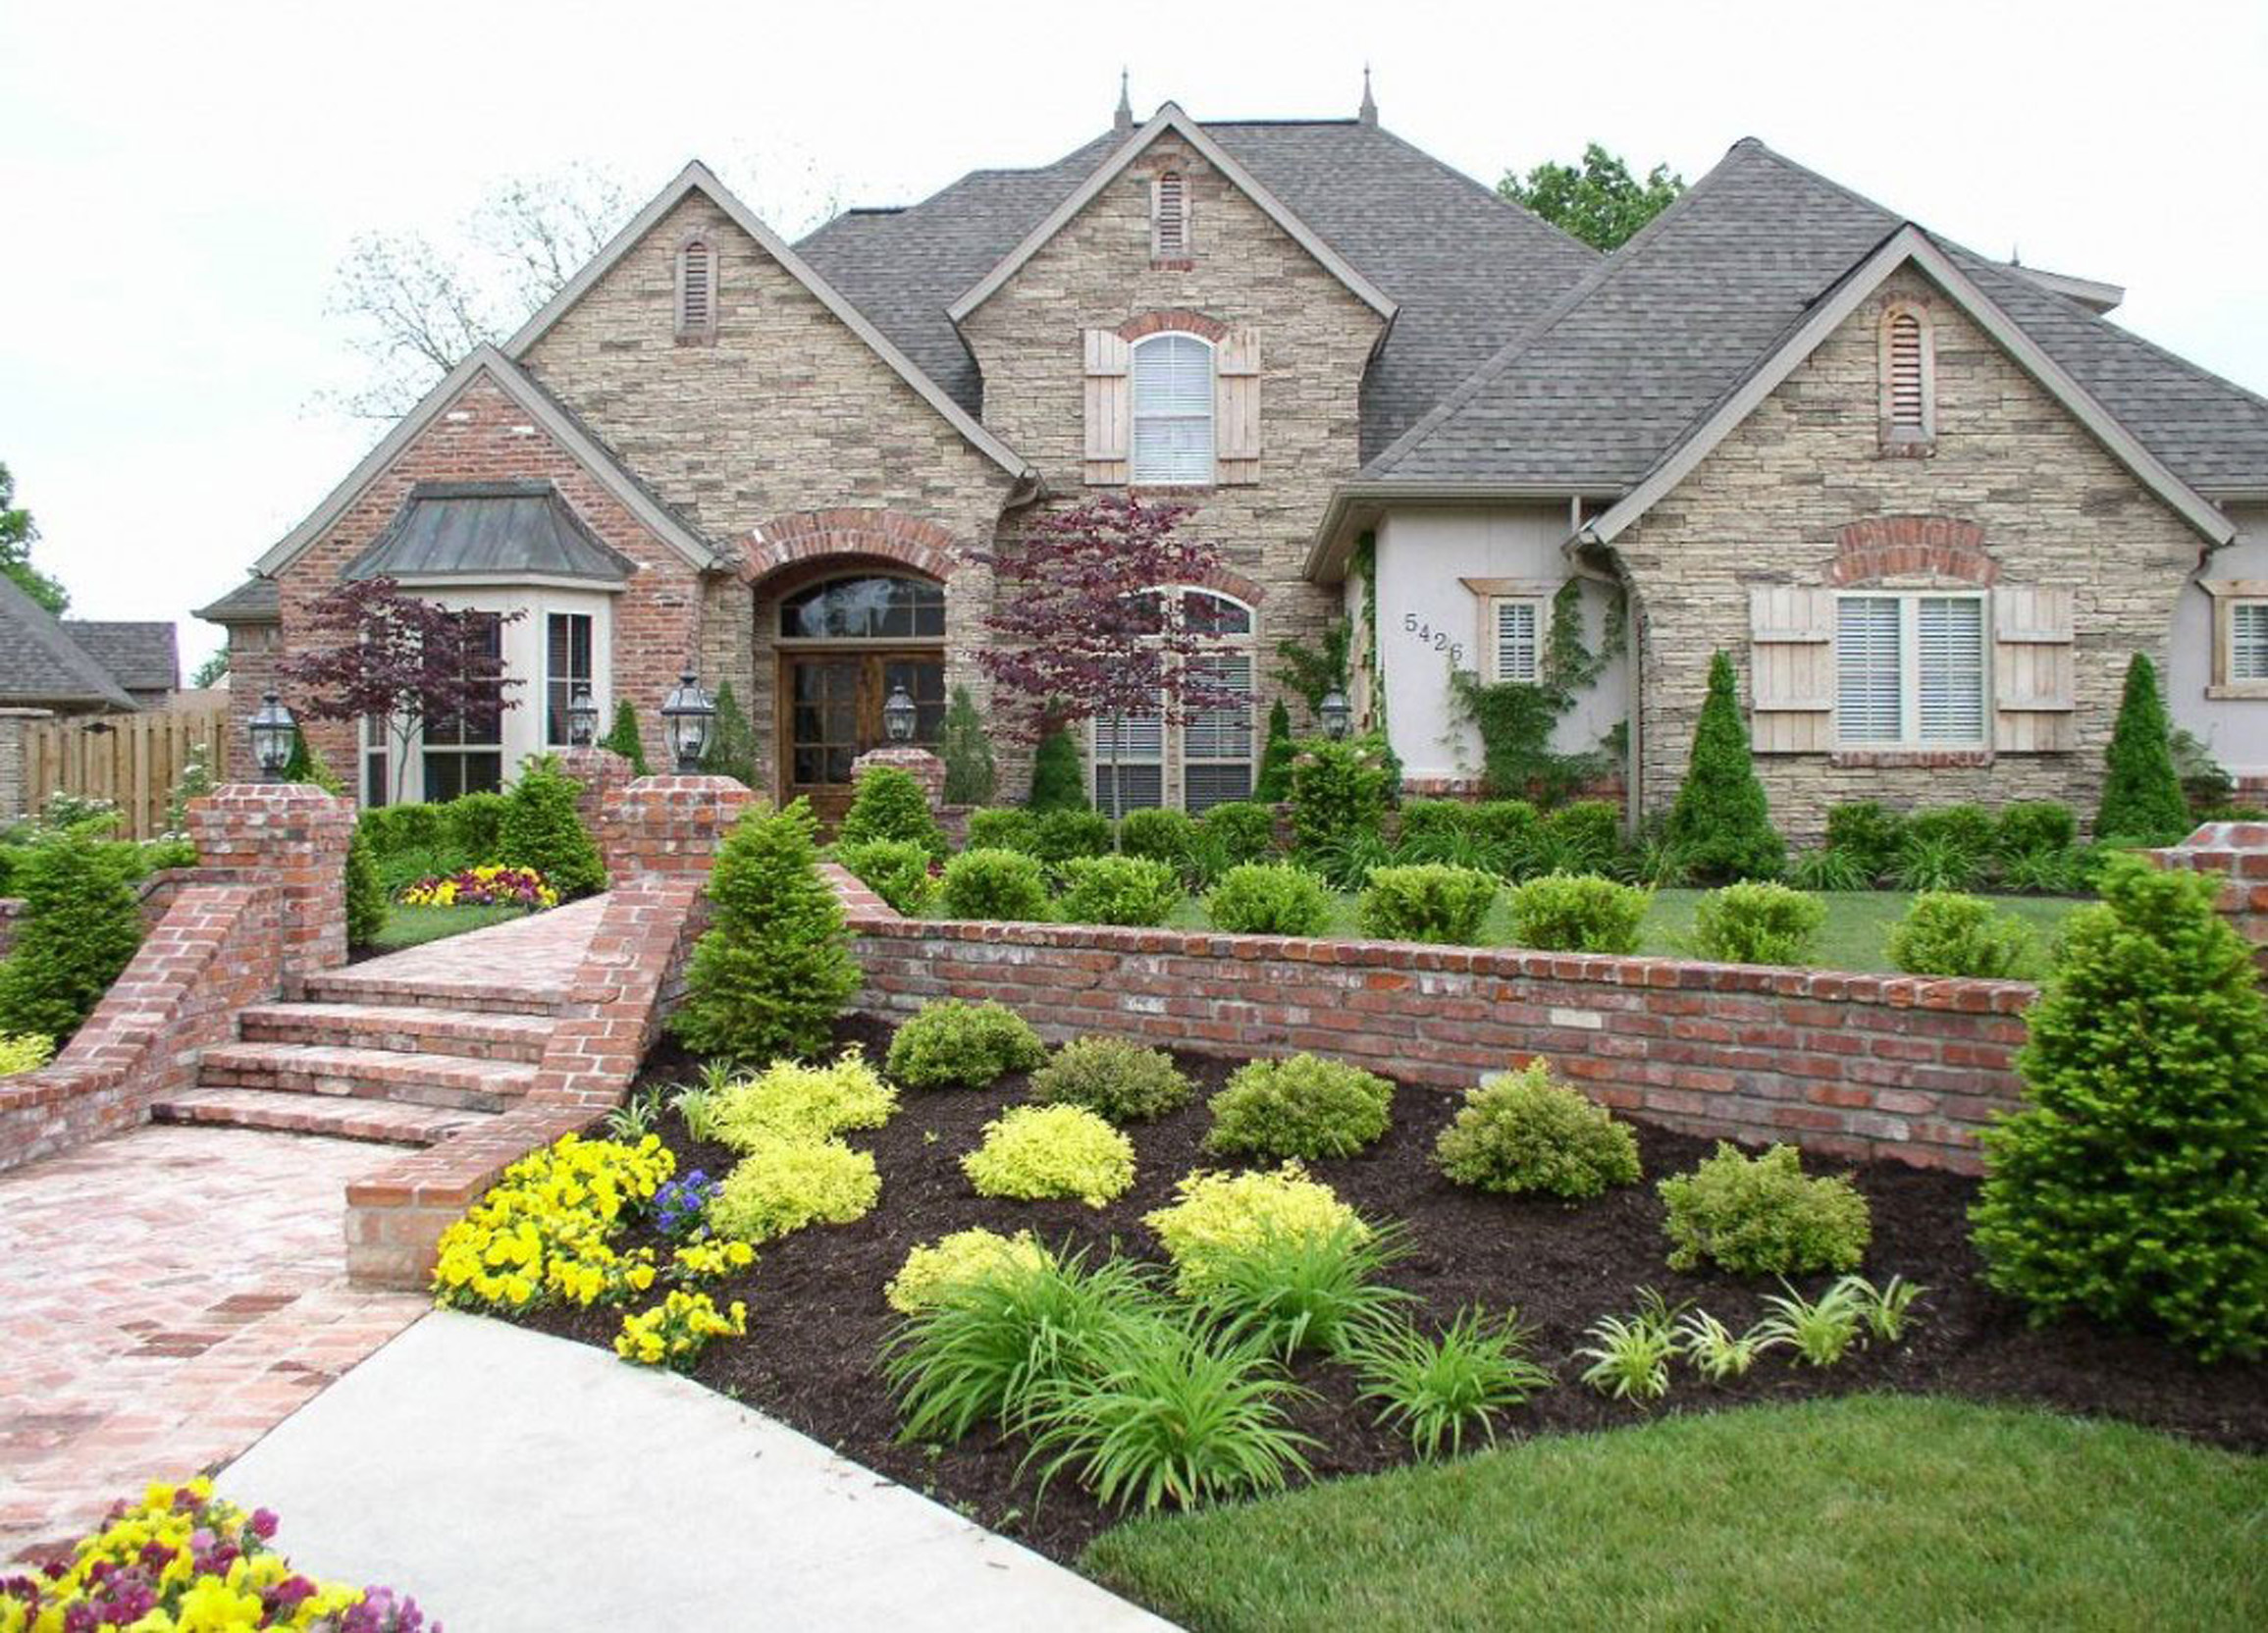 Luxury and classic house landscaping ideas free images for Luxury classic house